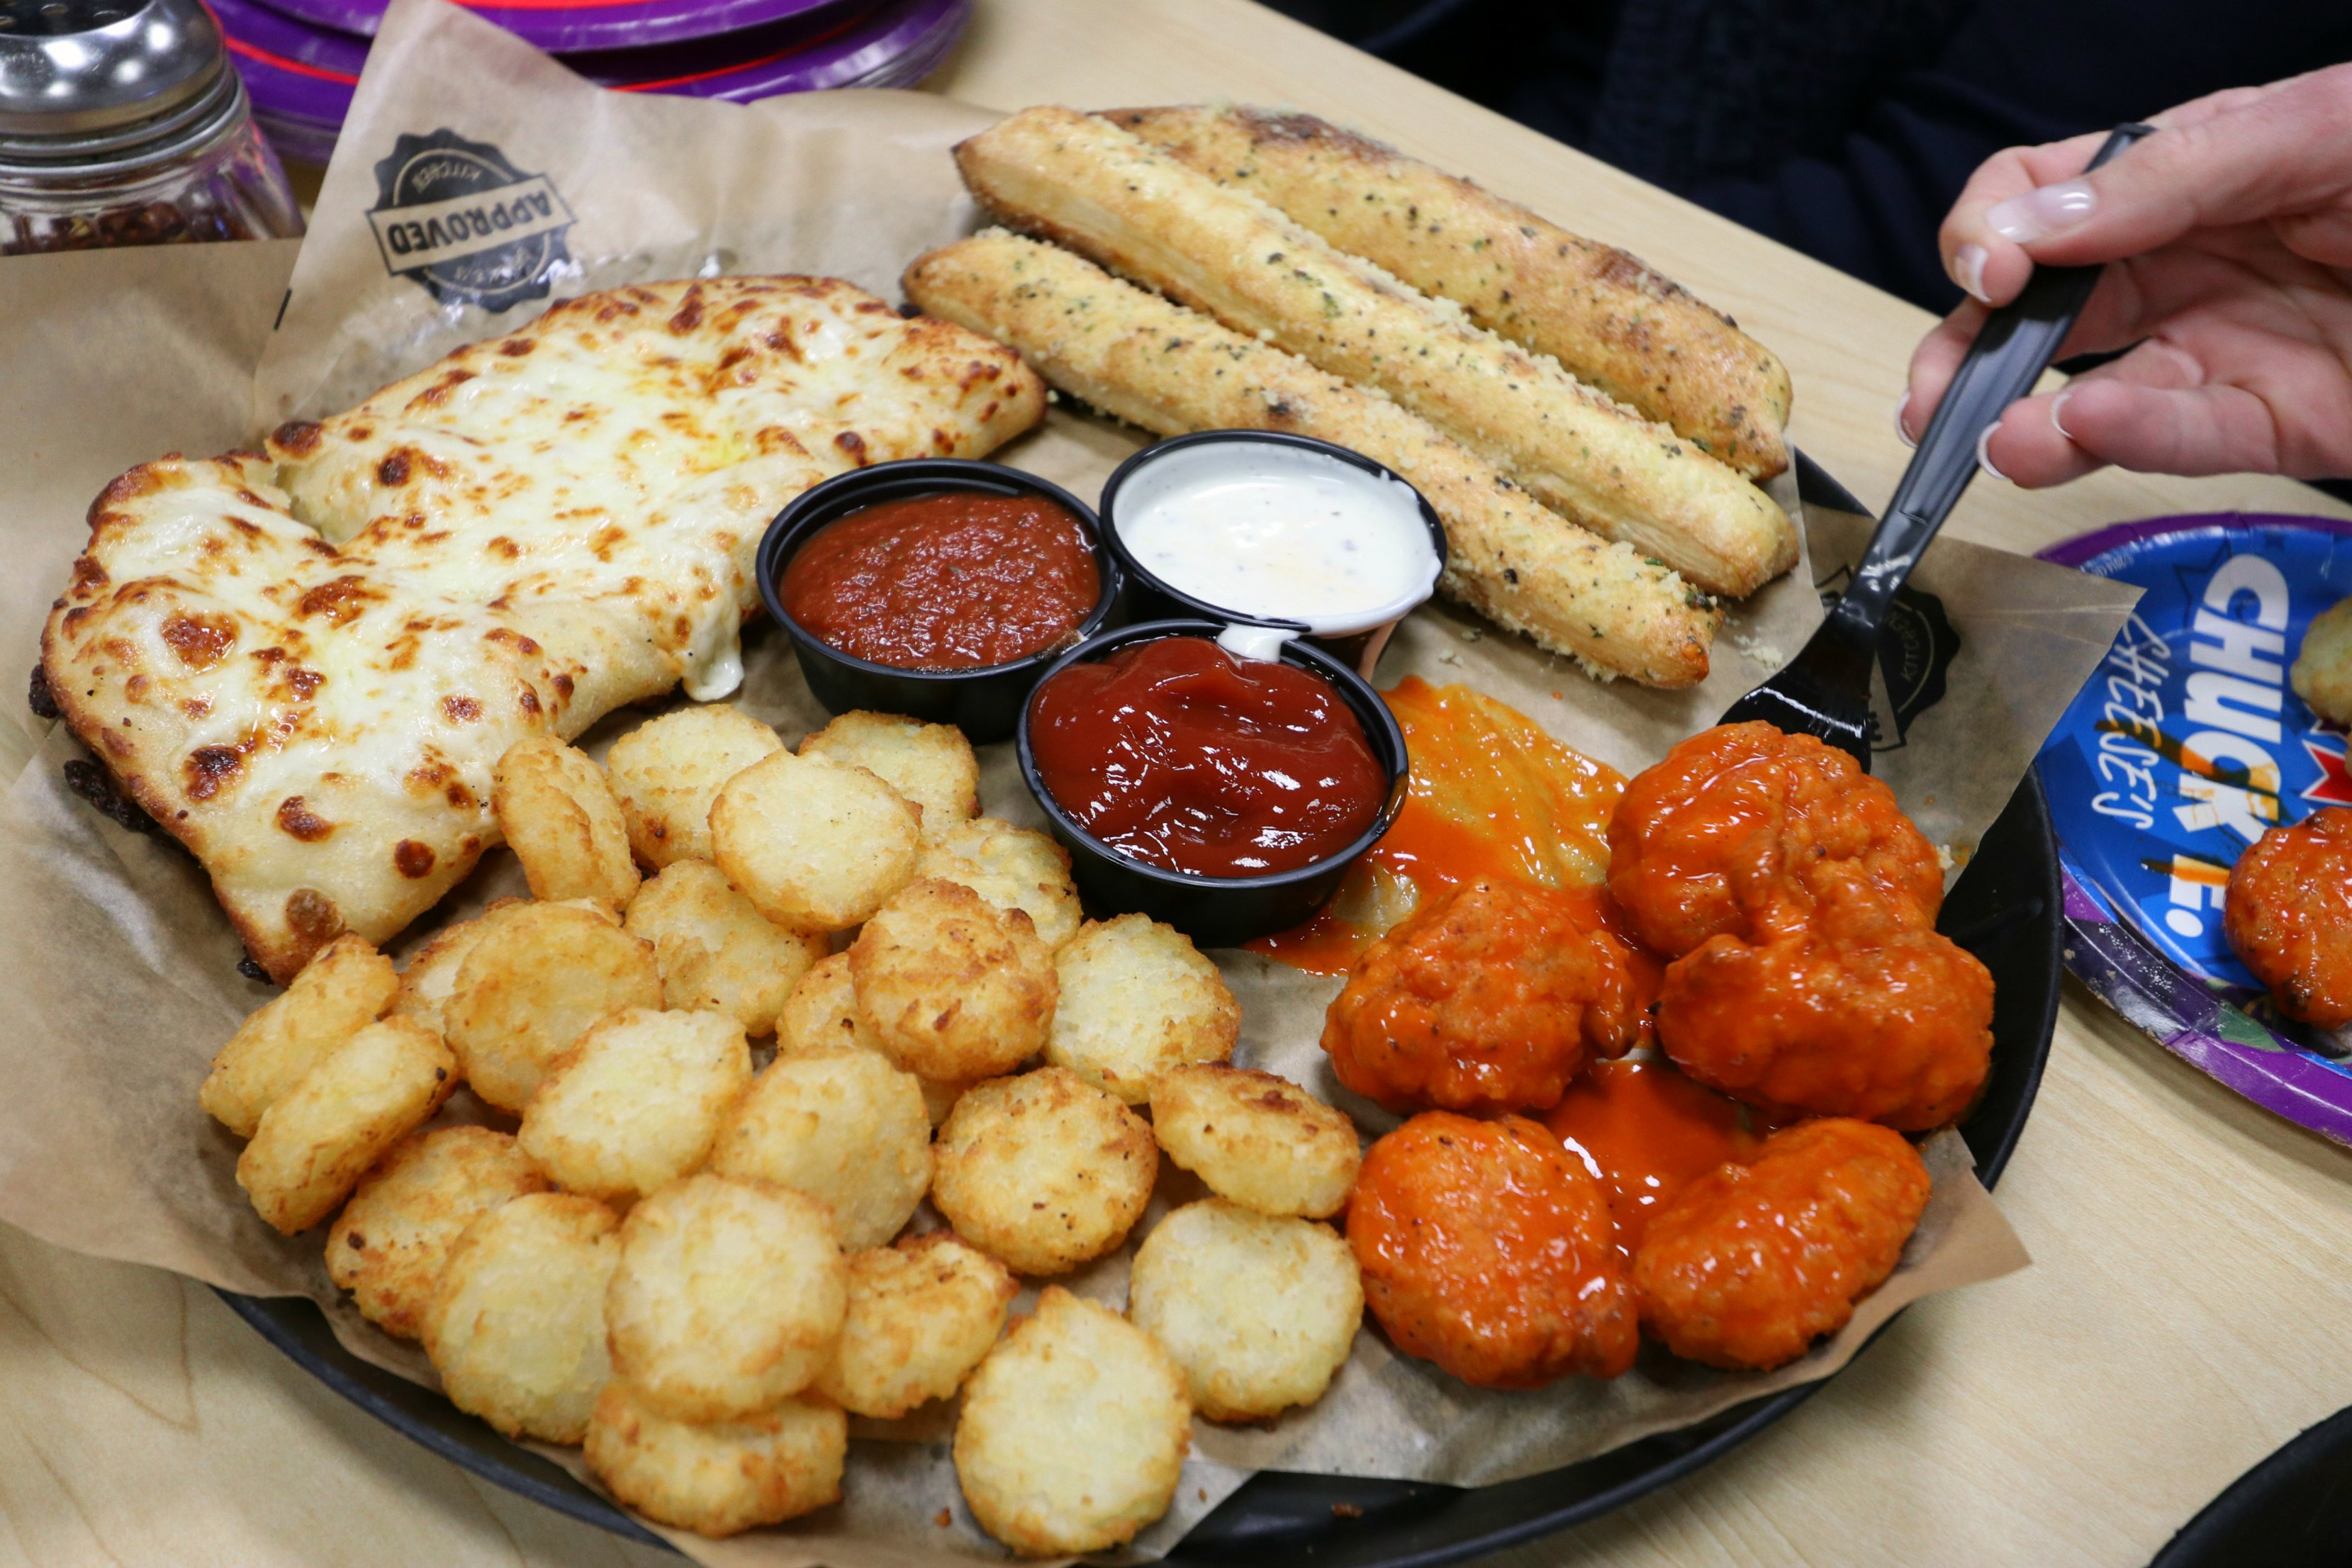 Chuck E. Cheese's appetizers